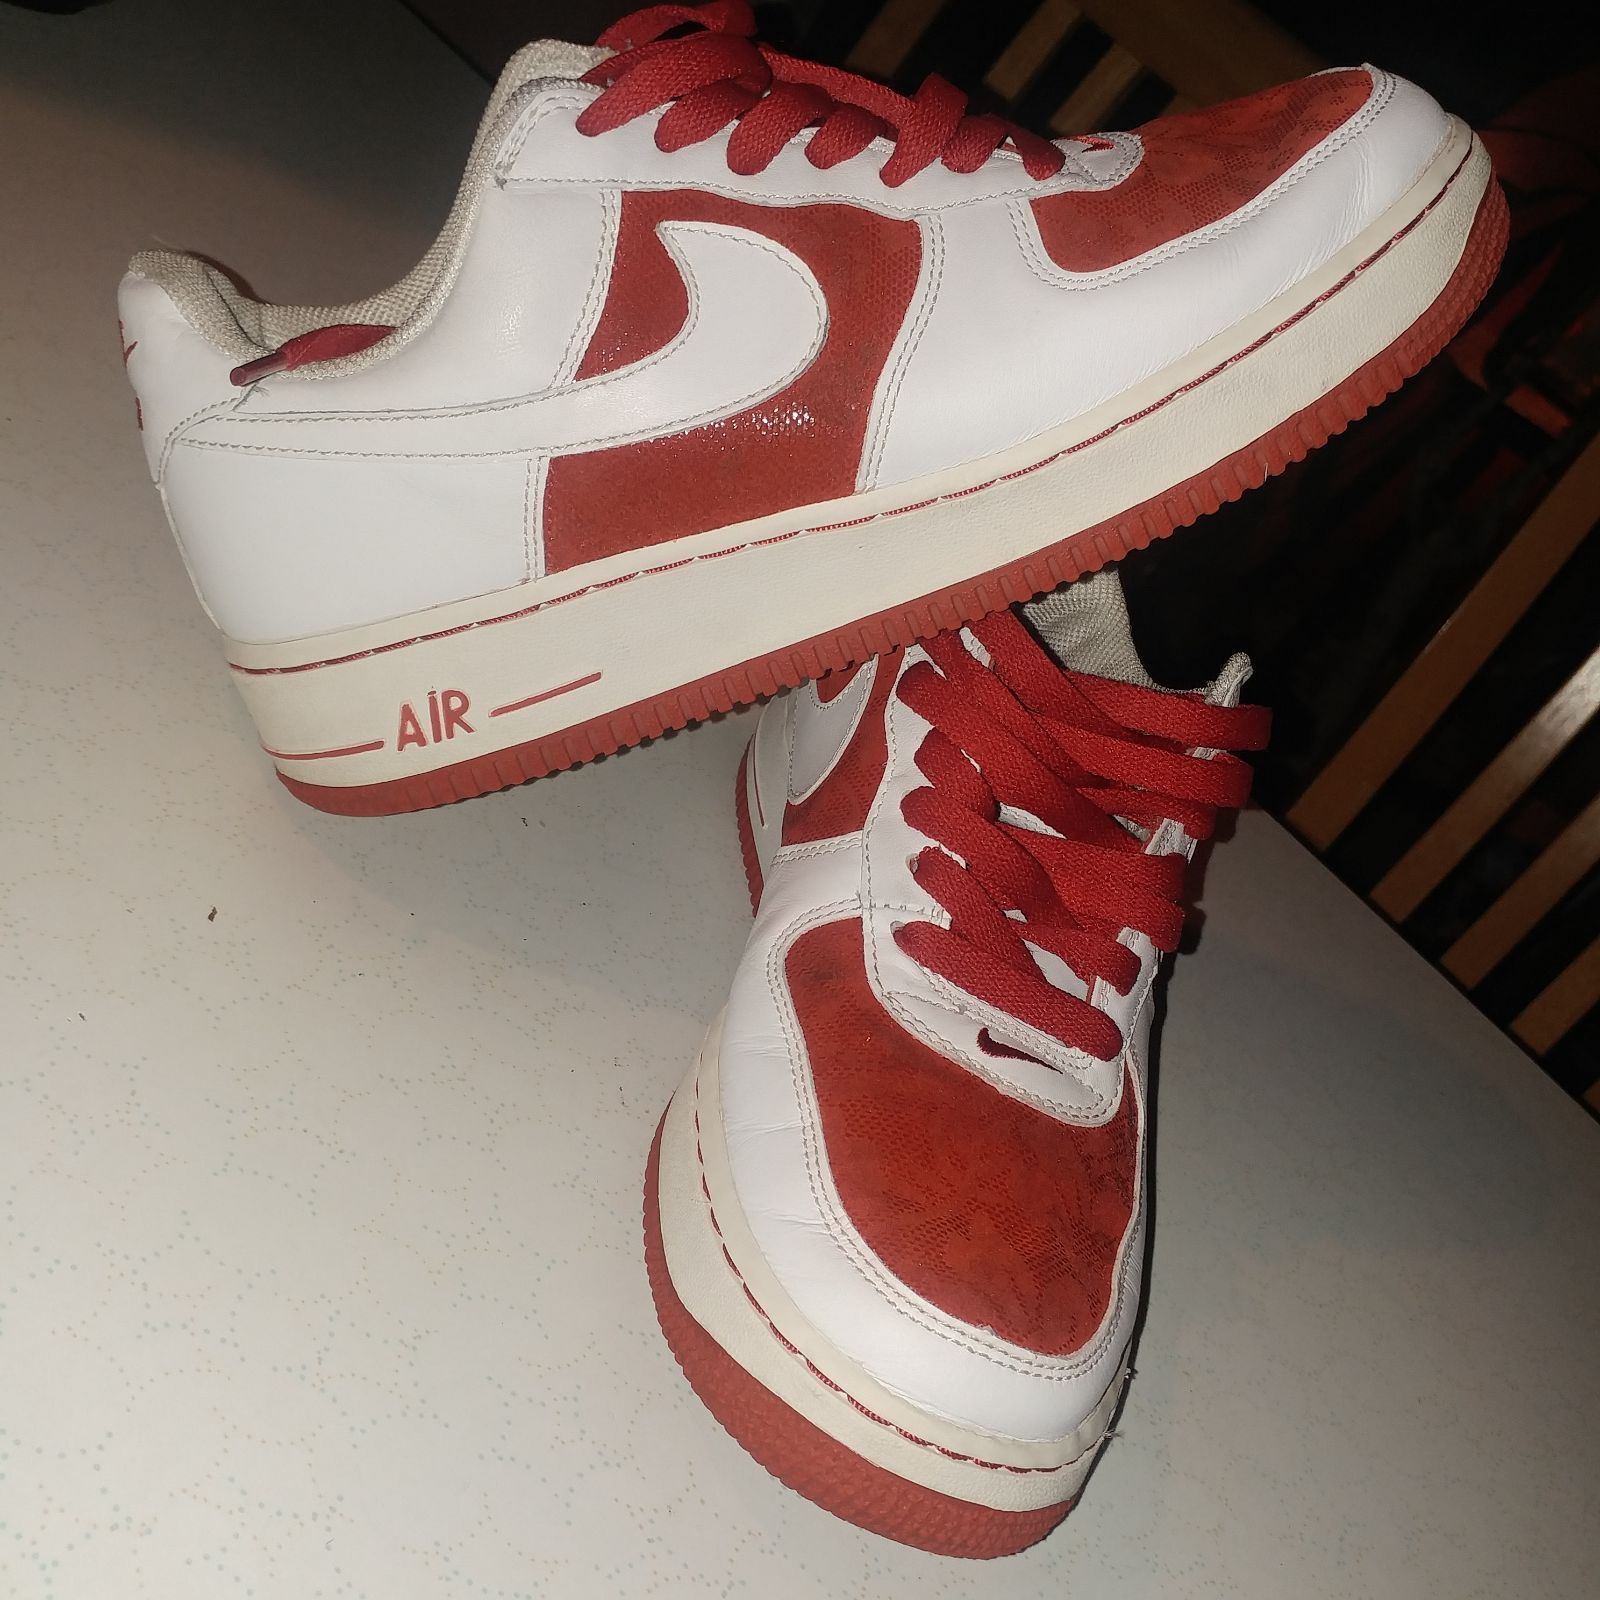 Some nice Air Force 1s just in time for school or just a